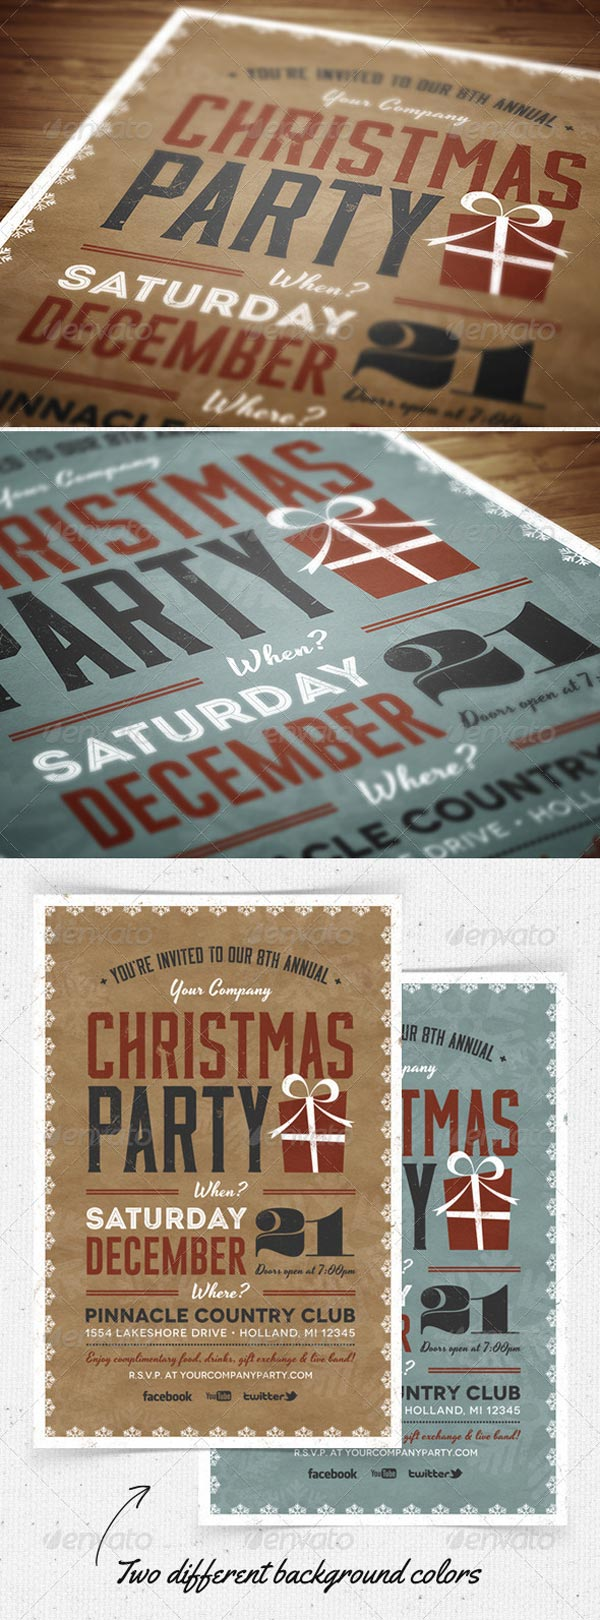 Invitation Template Christmas Party Christmas Party Flyer And Invitation Print Templates